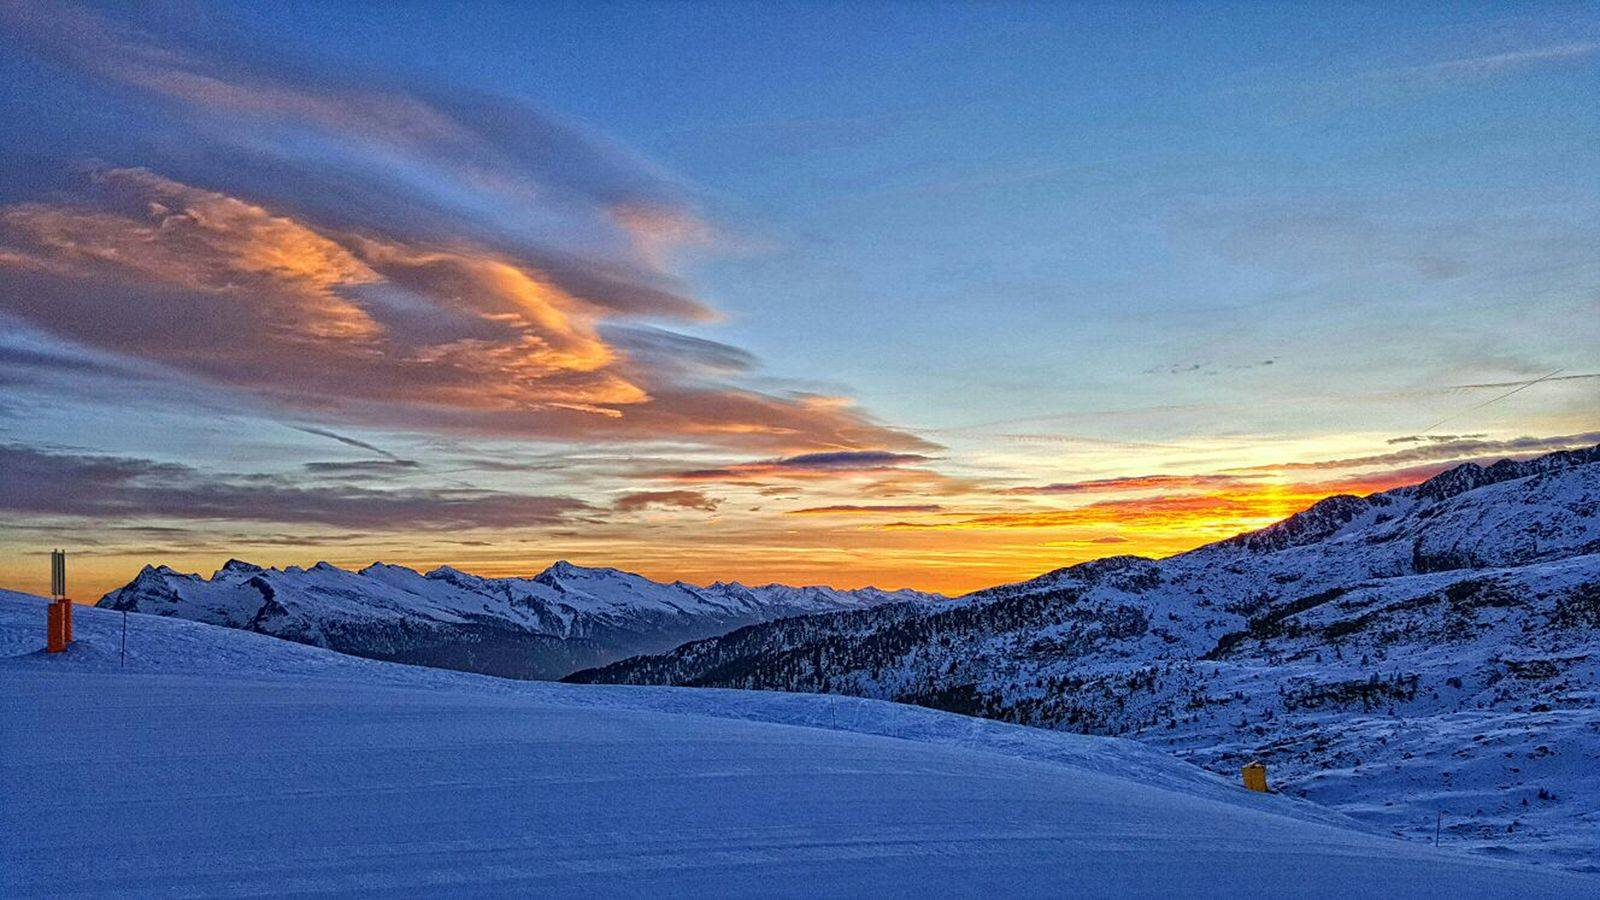 The sun sets on the snowy slopes of Passo San Pellegrino